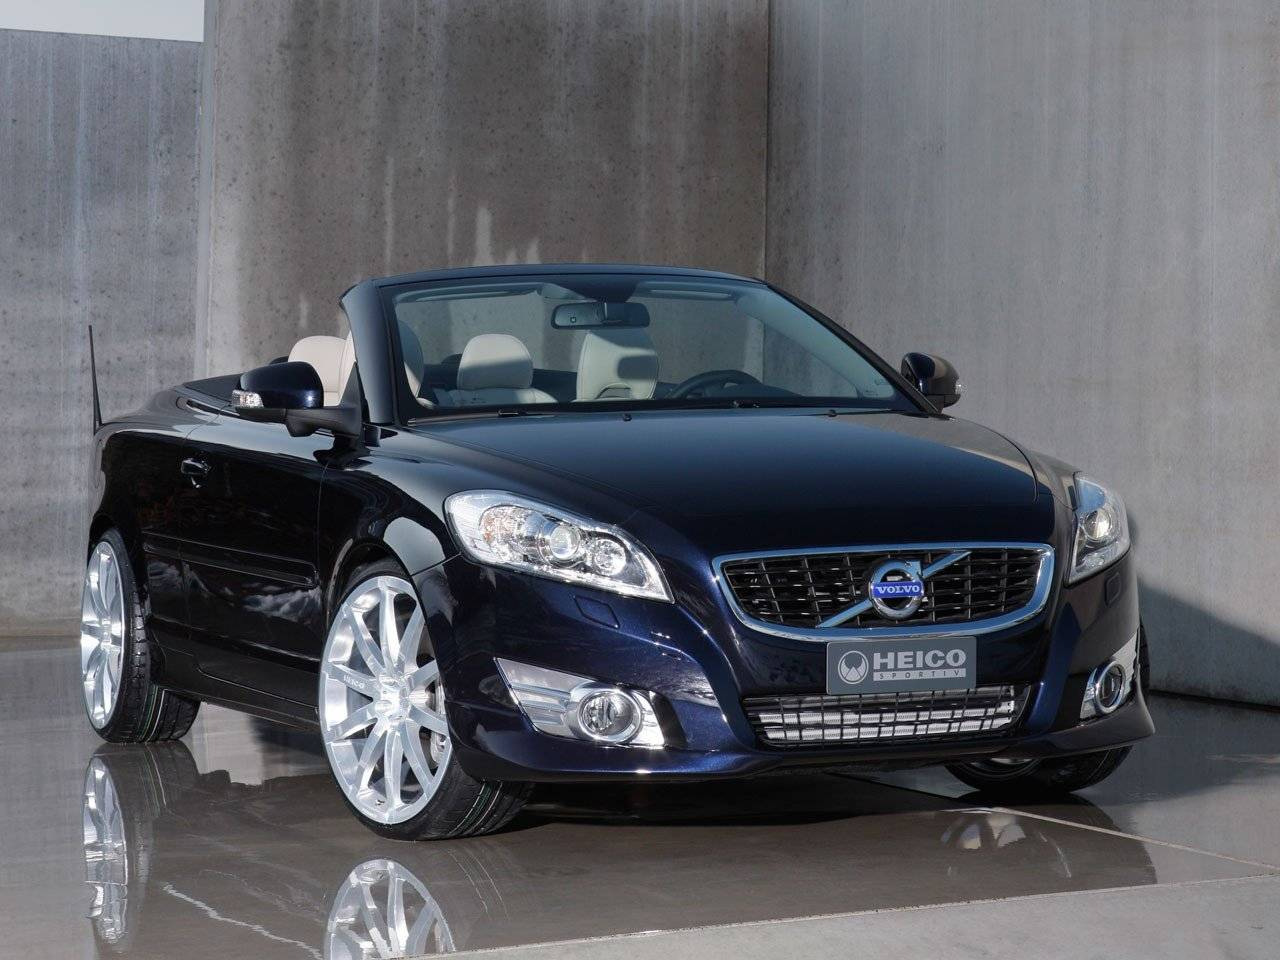 heico sportiv verfraait volvo c70 tuning styling. Black Bedroom Furniture Sets. Home Design Ideas